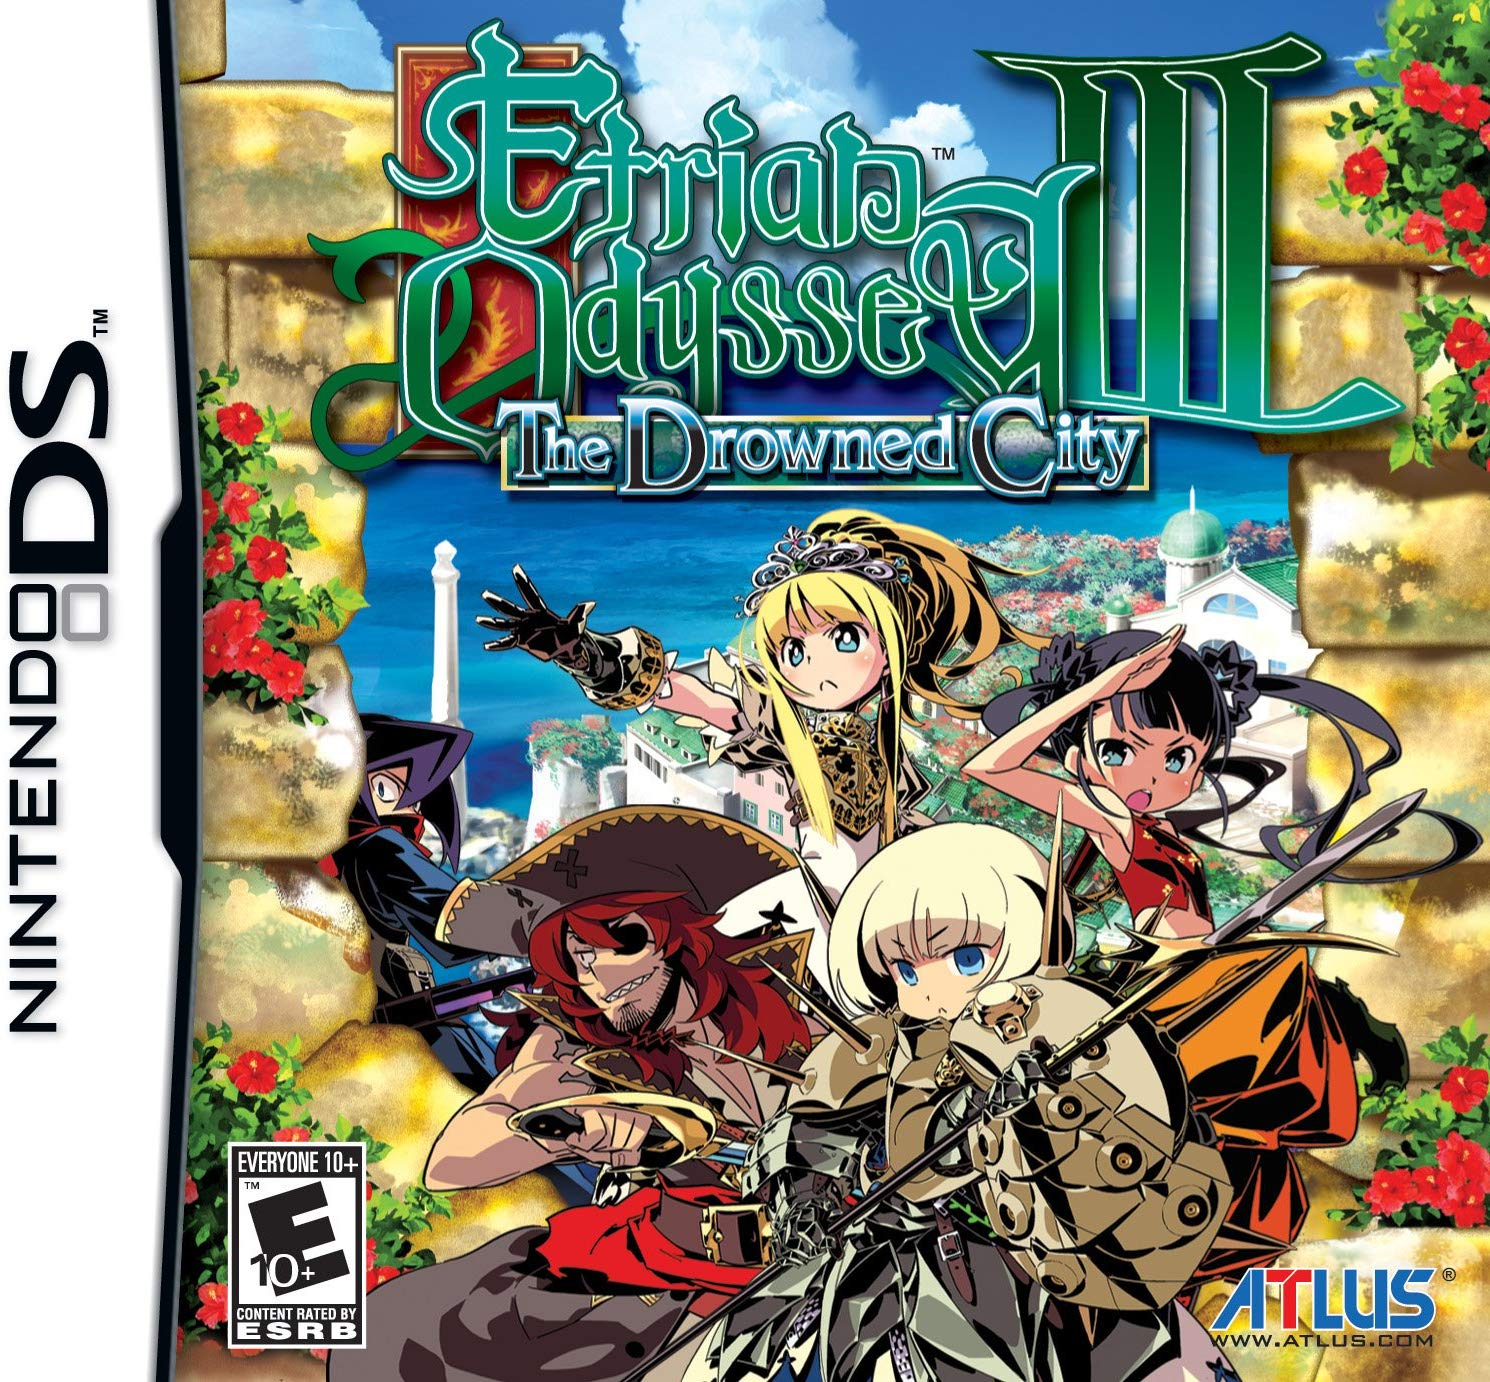 etrian-odyssey-iii-the-drowned-city